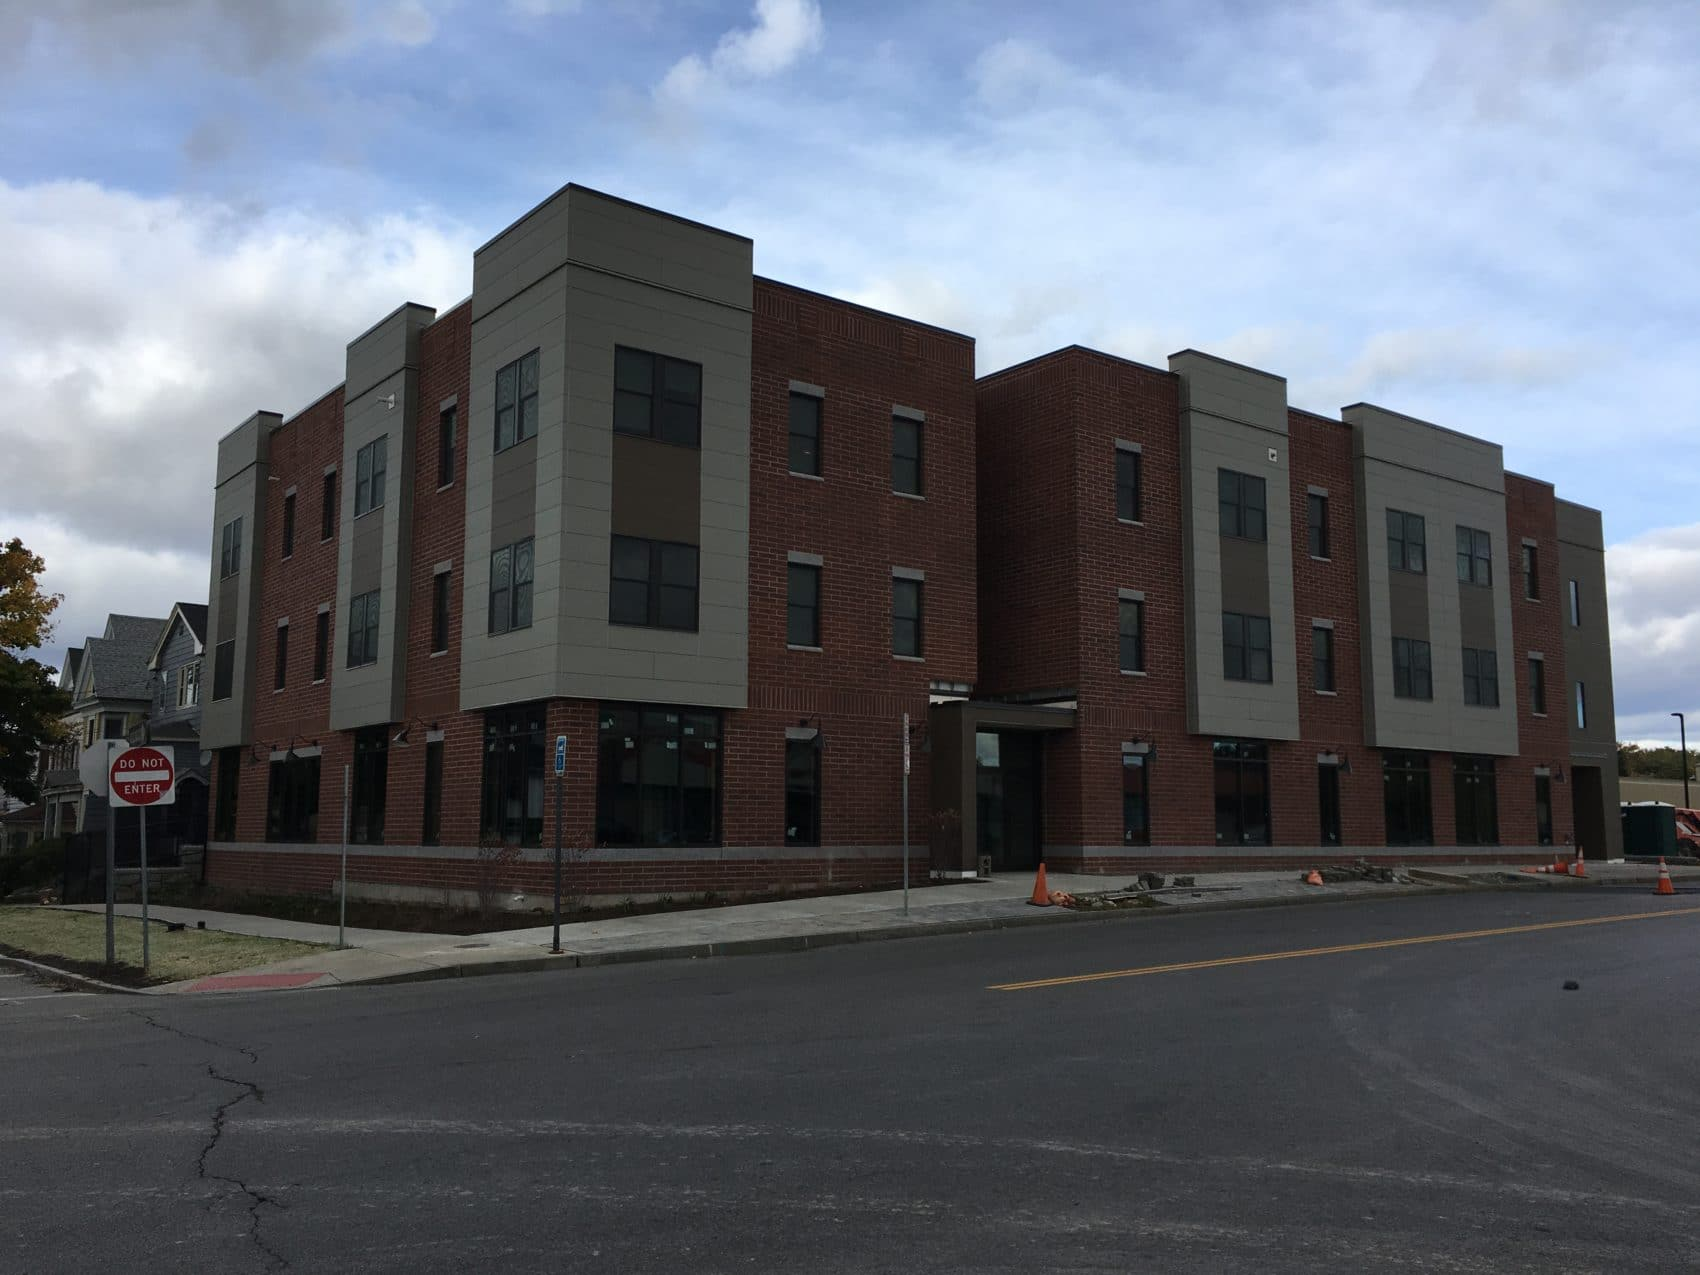 Syracuse group unveils 49 new apartments for working class (photos)